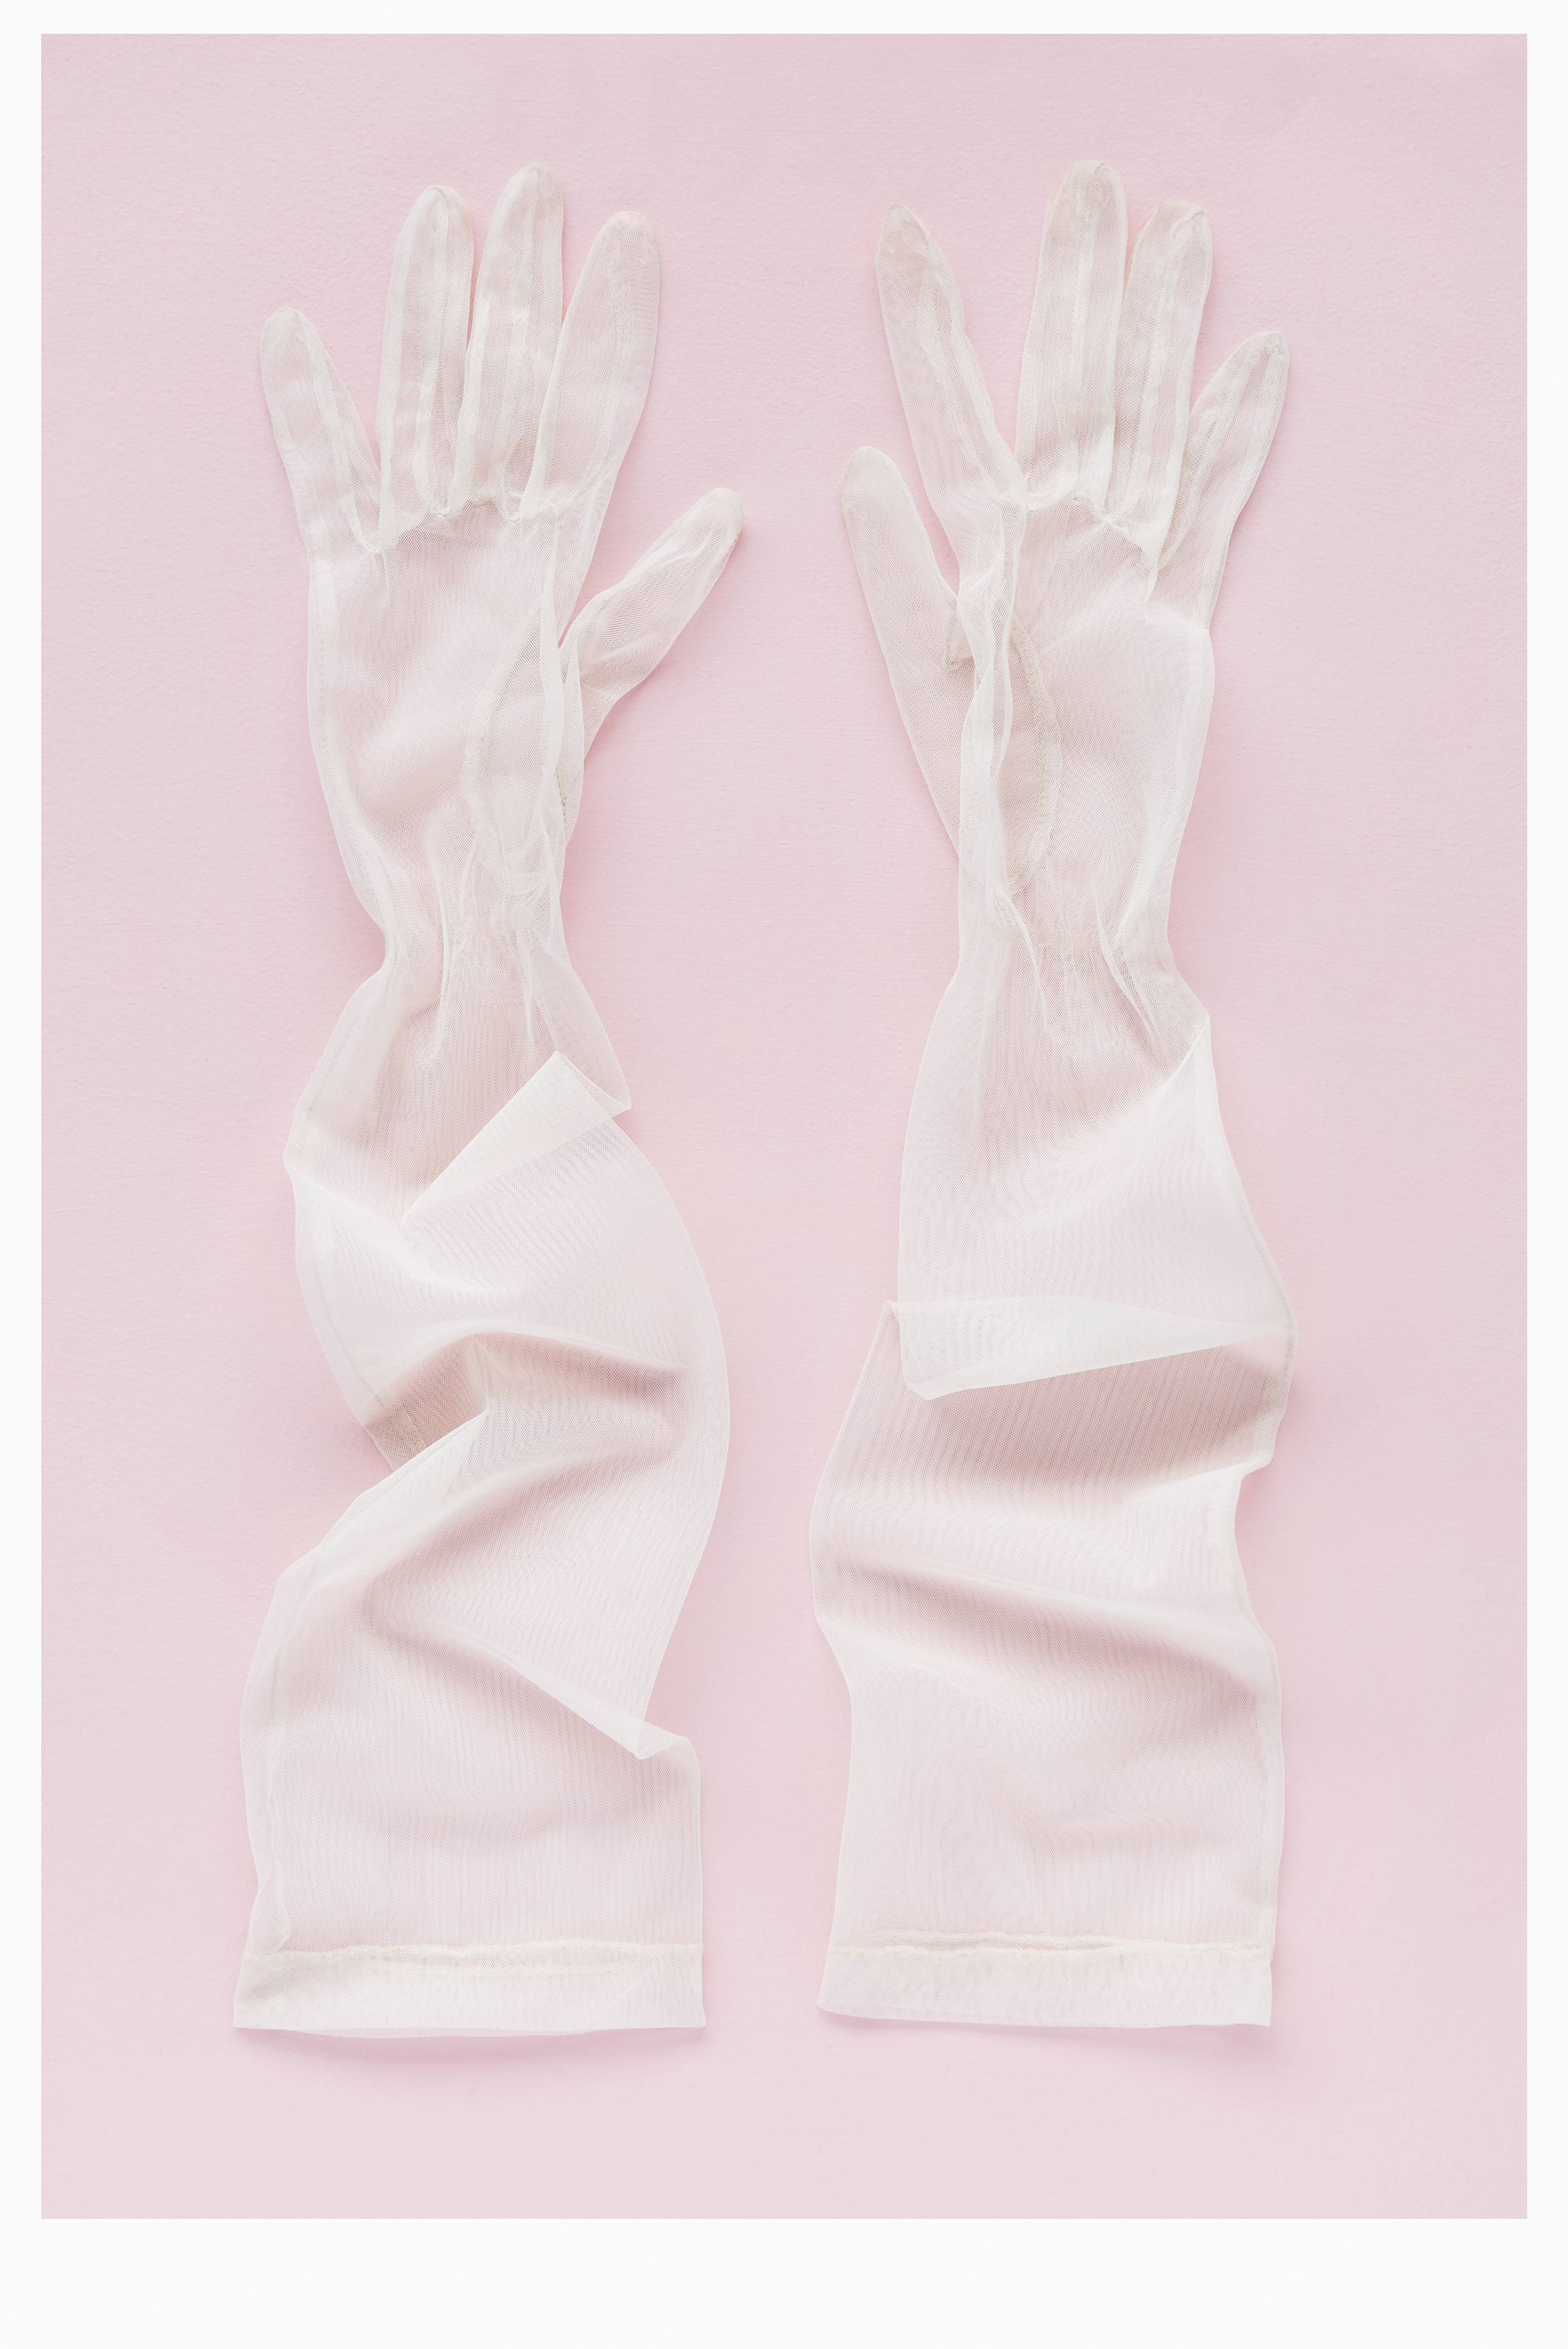 ATARAH_181007_Gloves_White_101_Br_RT_Web.jpg